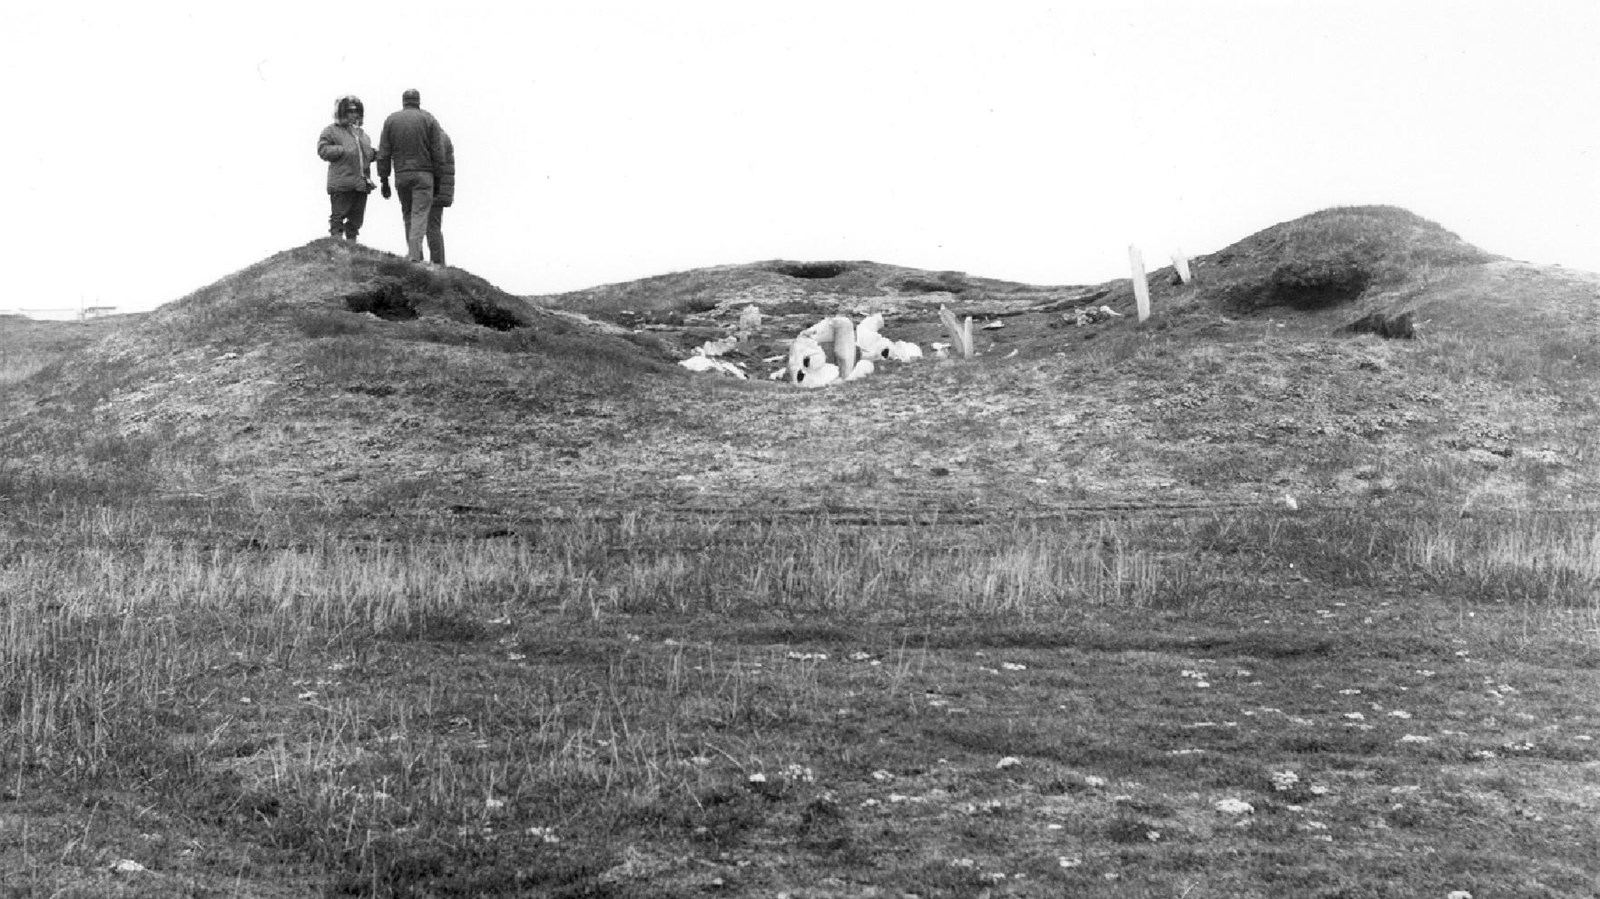 A mound site whale bones at its peak and three people standing next to them